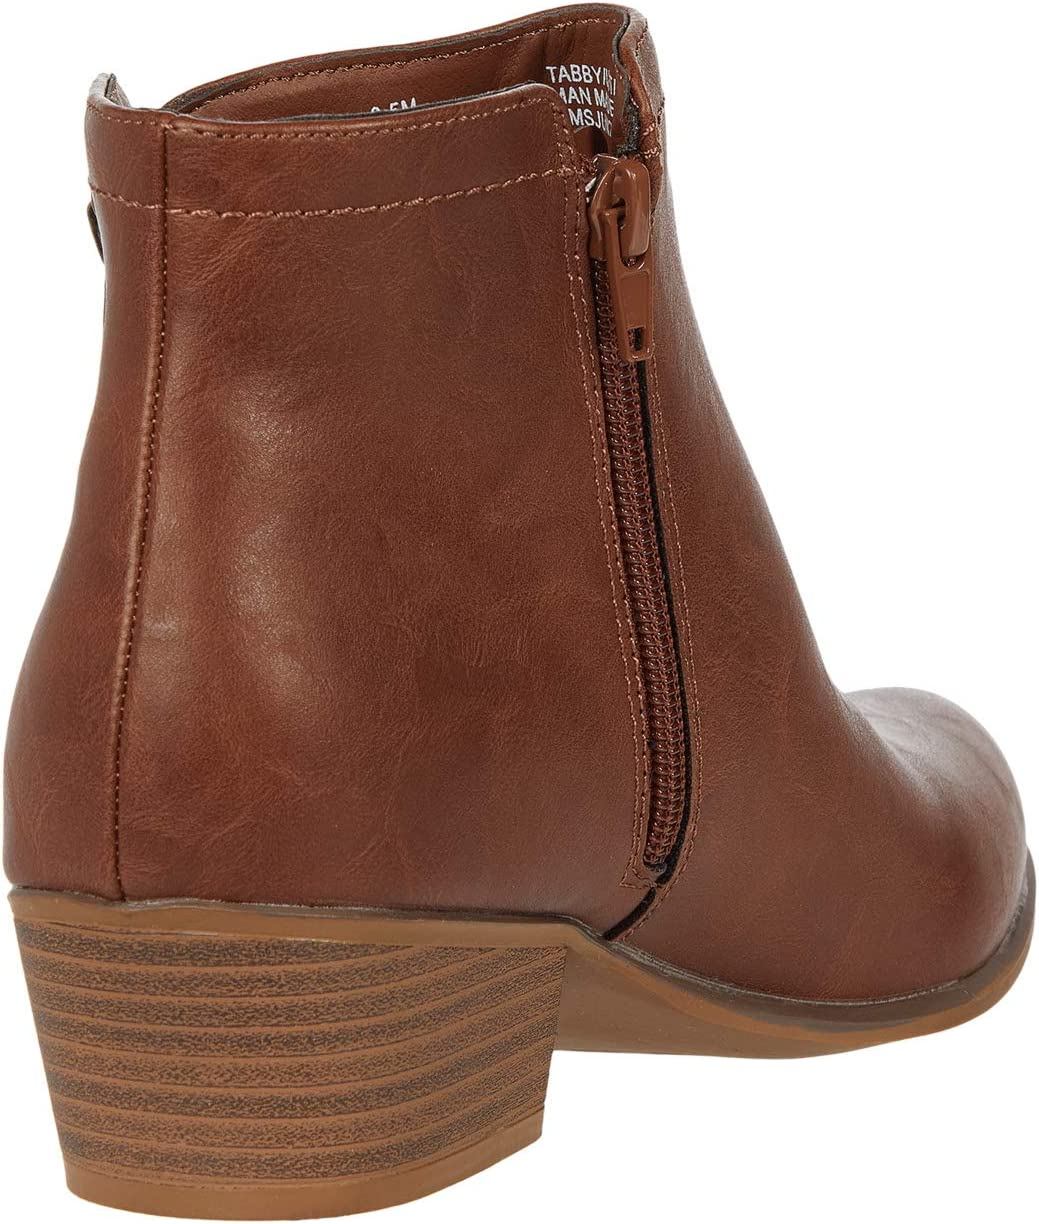 UNIONBAY Tabby | Women's shoes | 2020 Newest